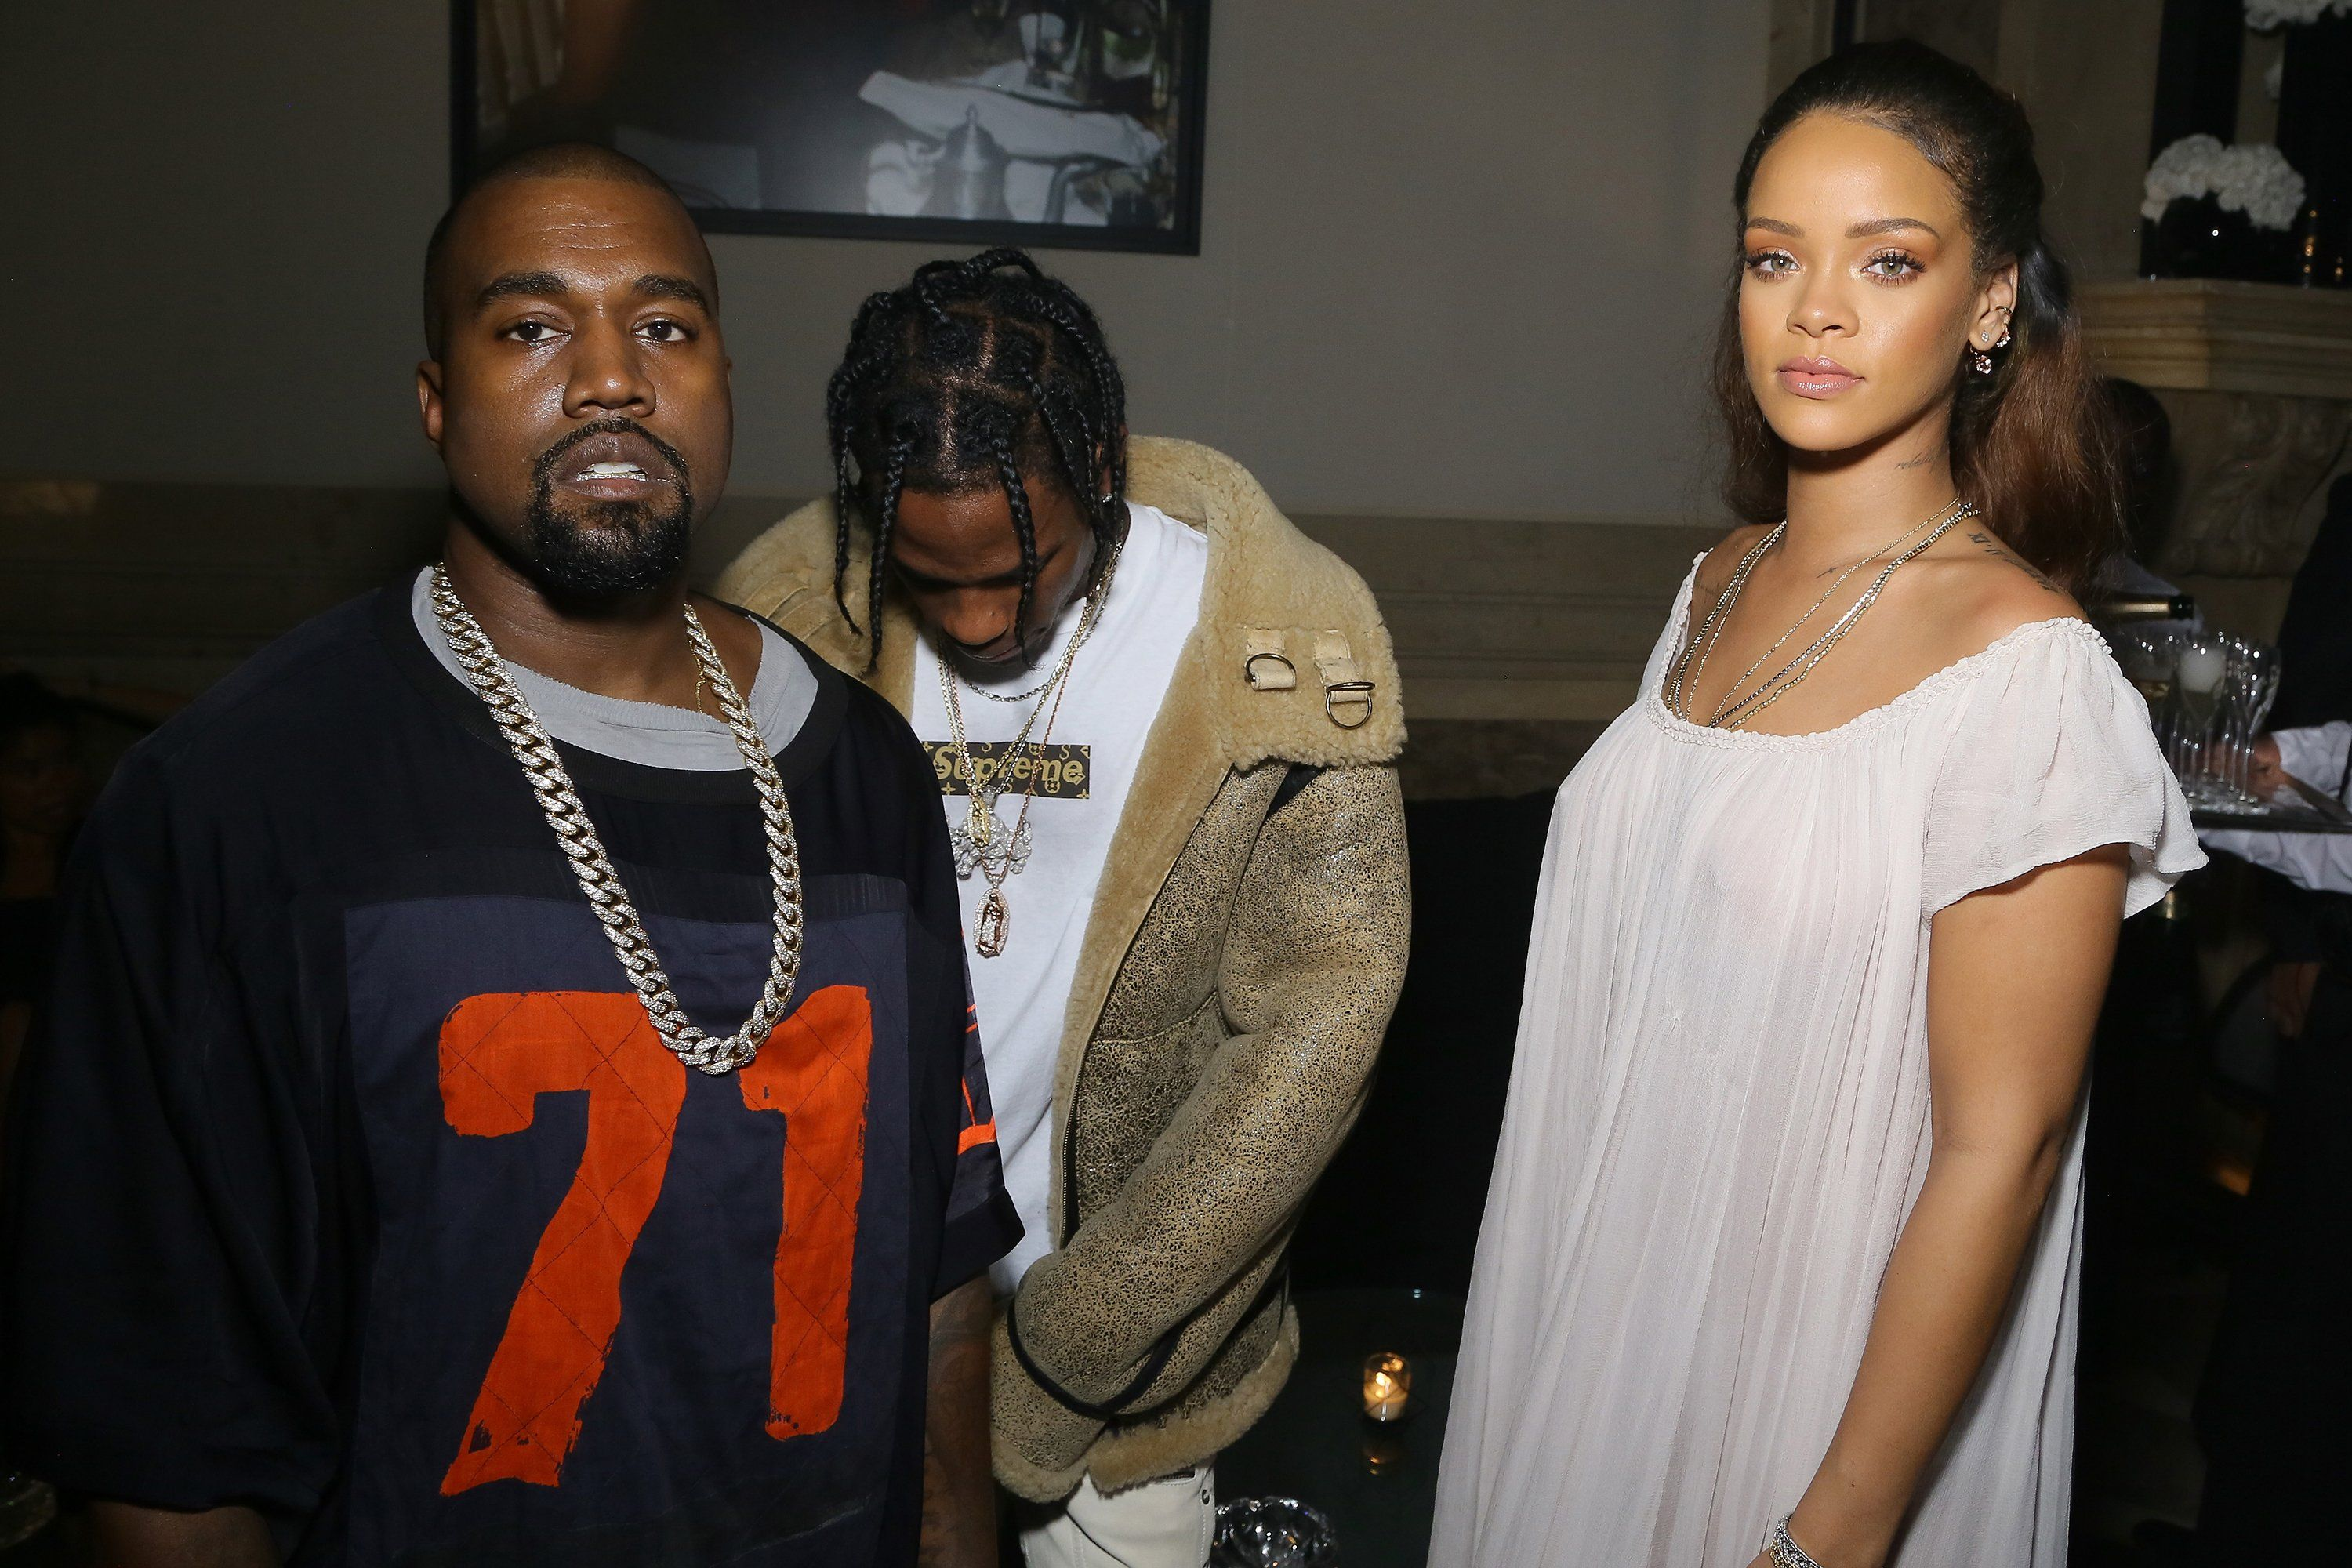 Kanye West, Travis Scott, and Rihanna at Vogue's 95th Anniversary Party in Paris, October 2015.